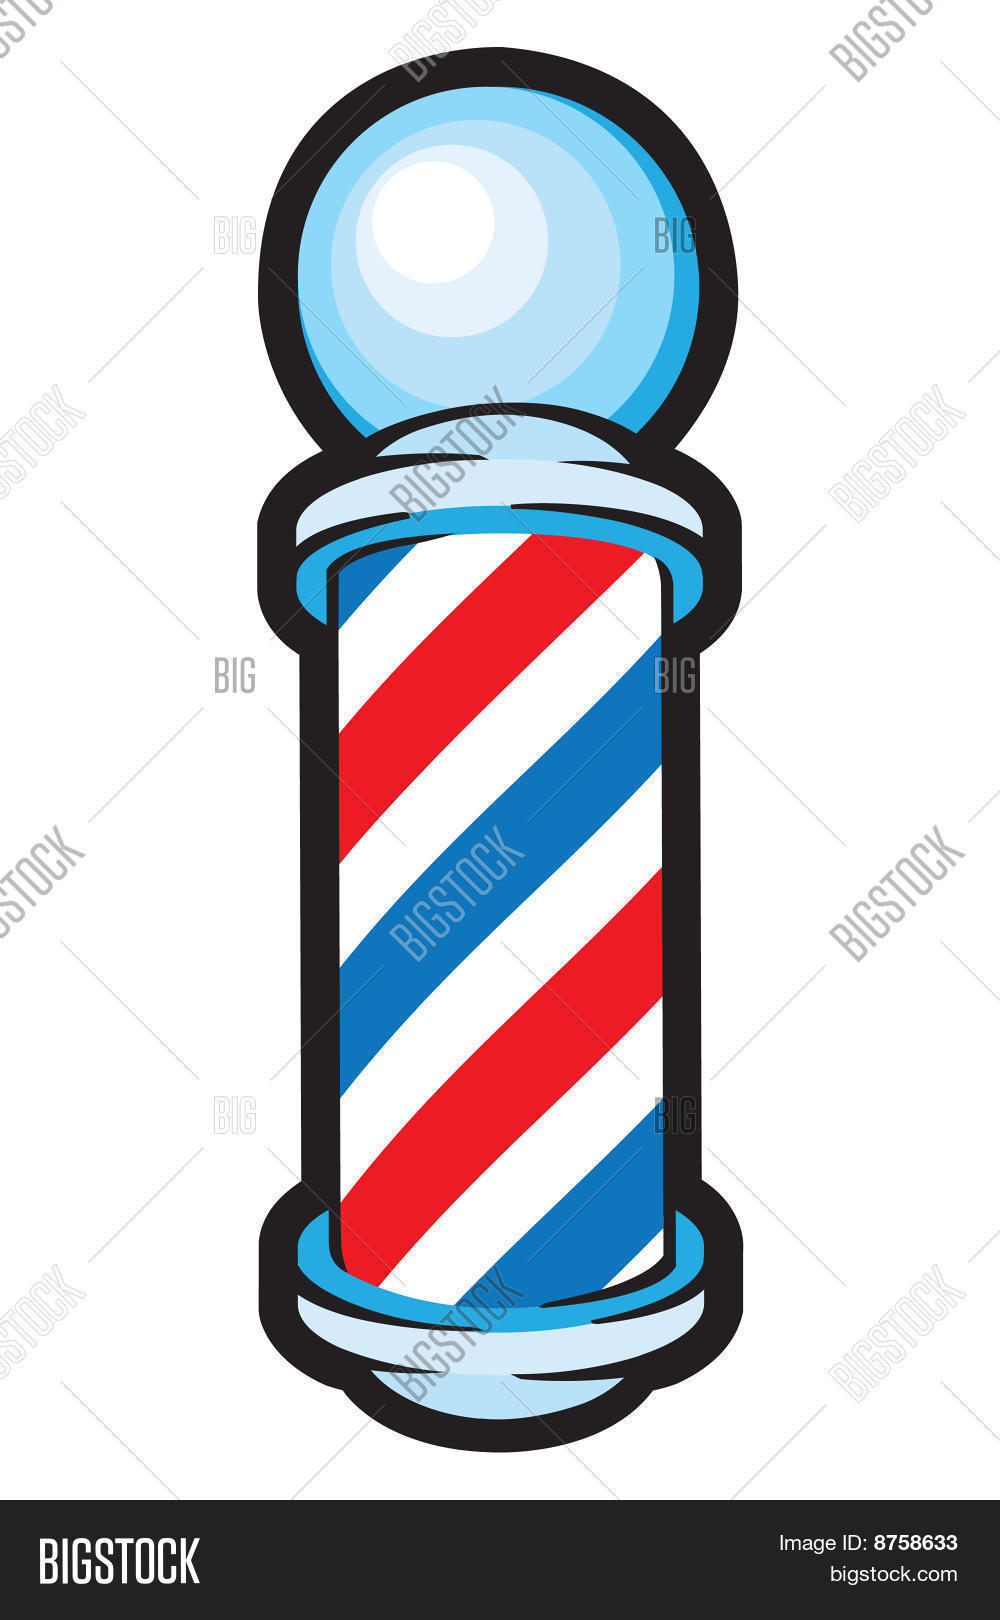 barber pole vector photo free trial bigstock rh bigstockphoto com barber pole vector art barber pole vector art